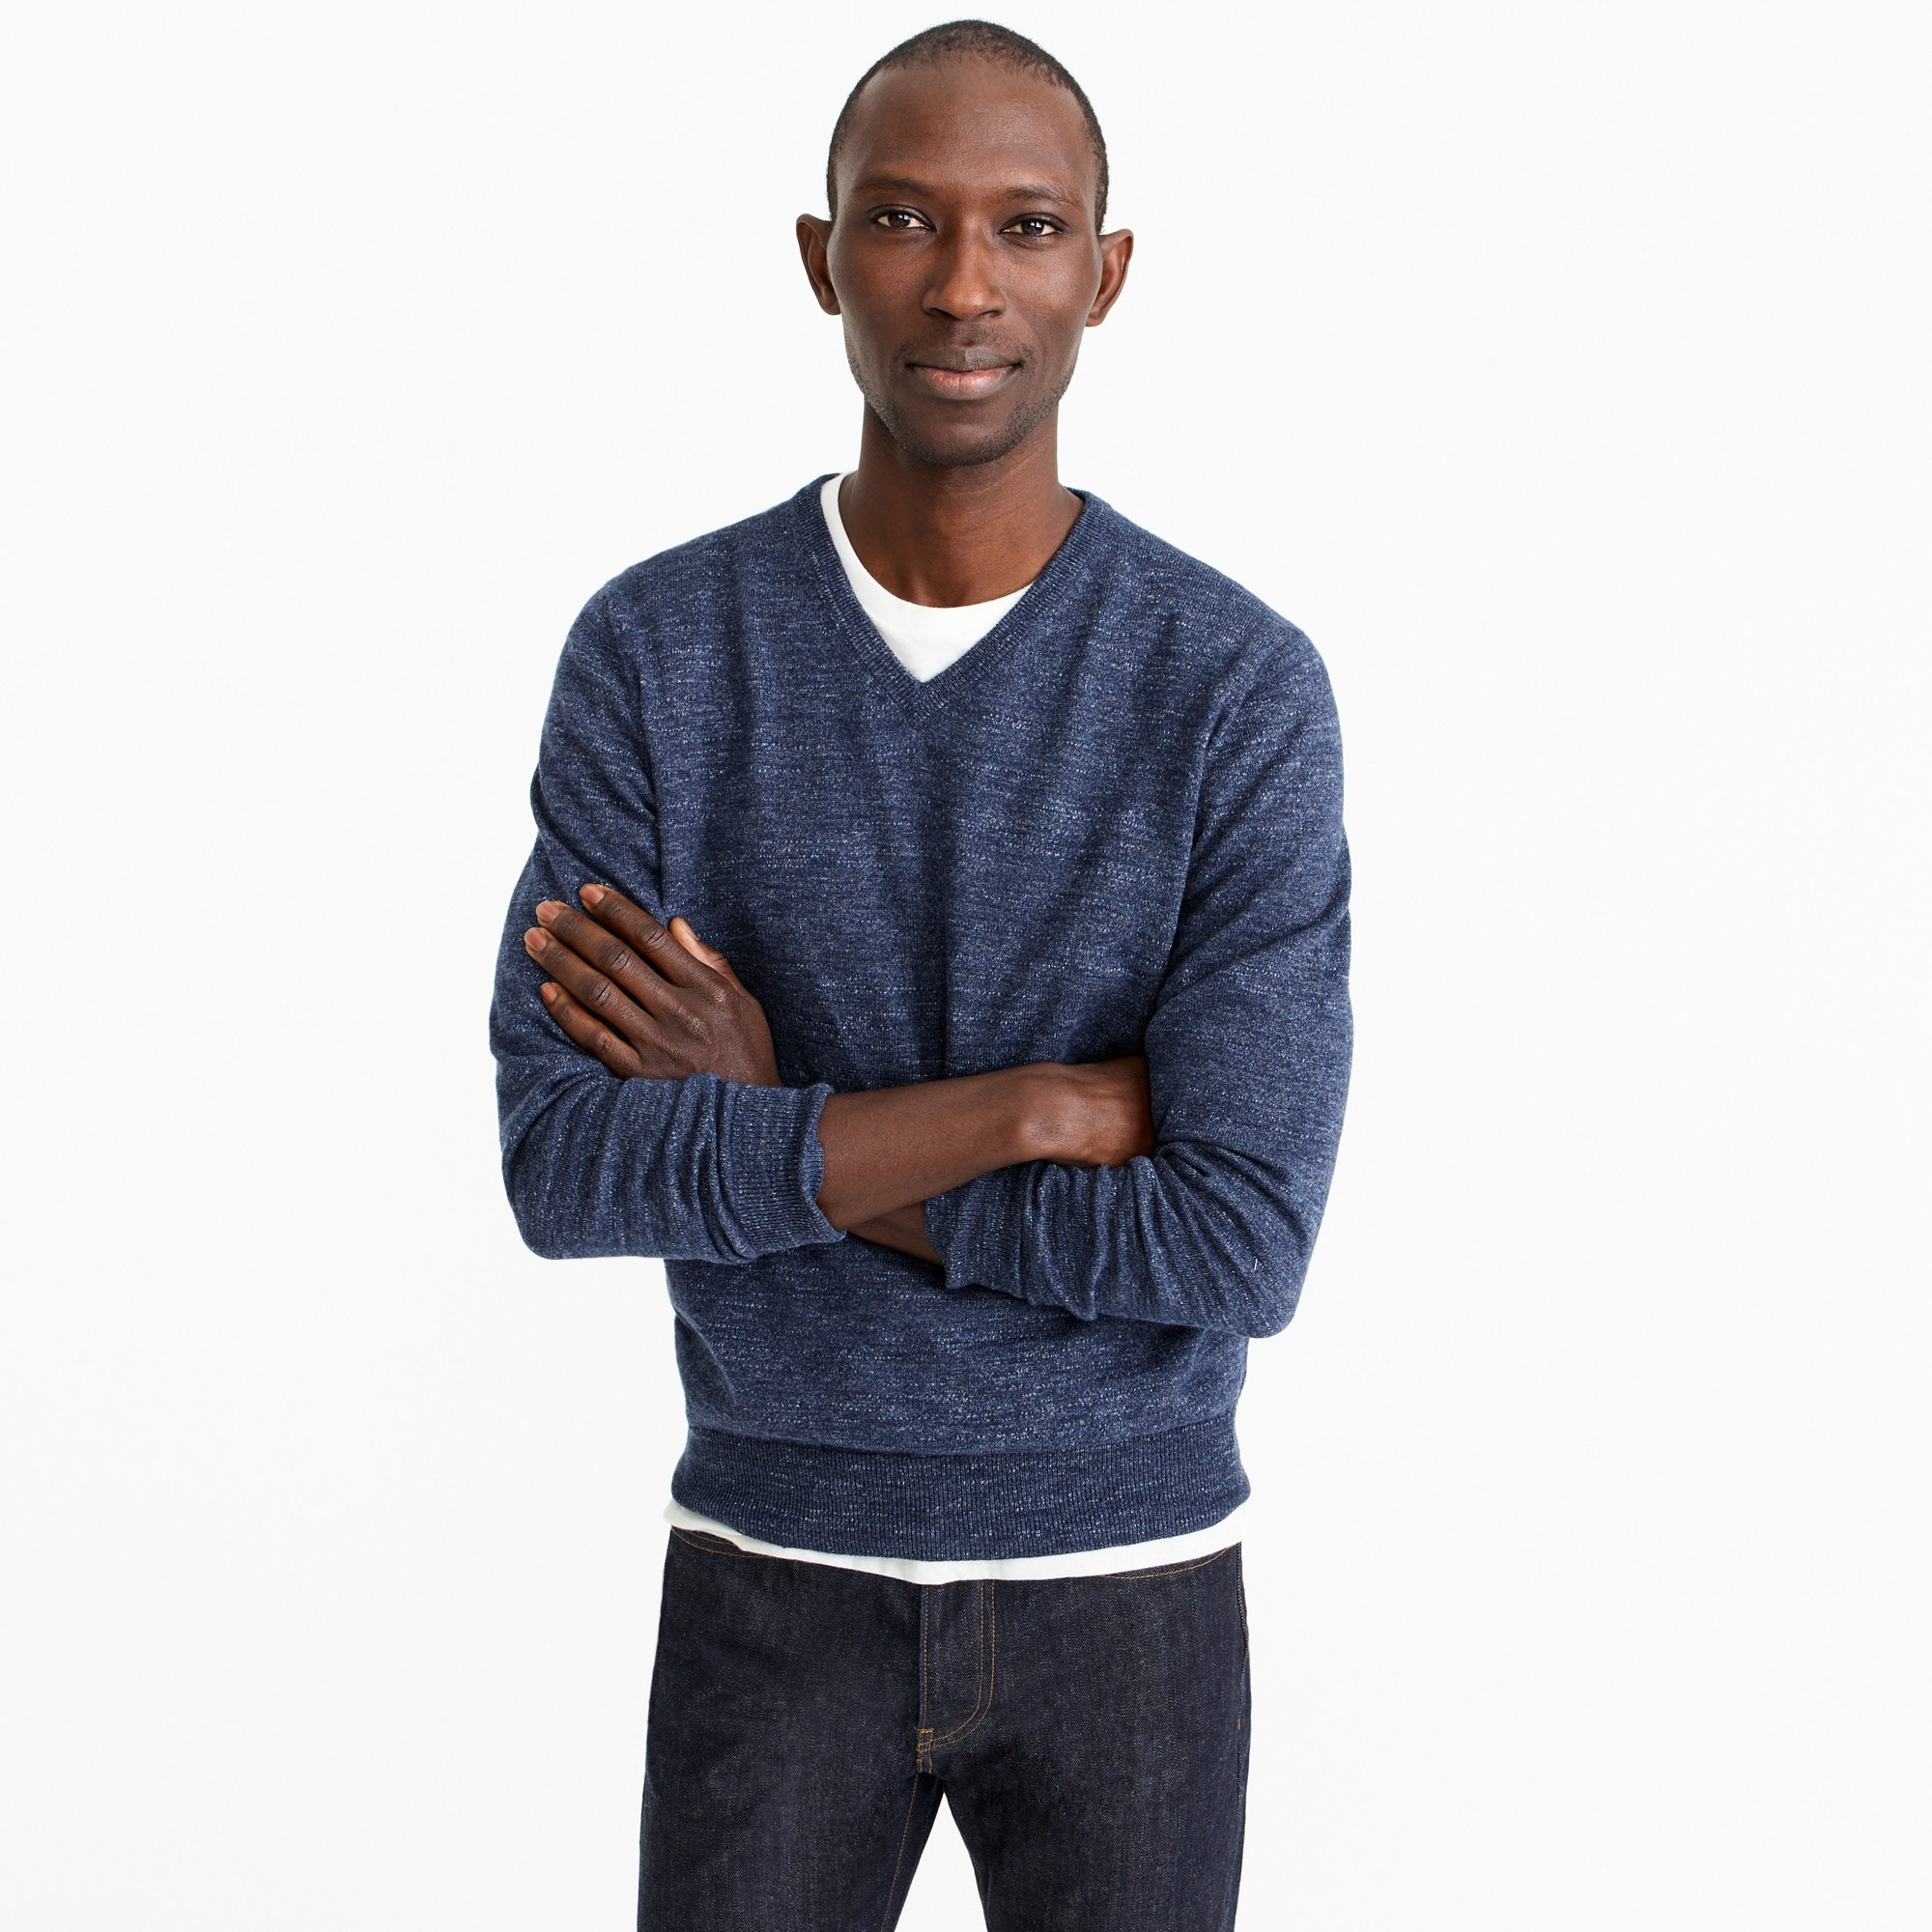 Image 1 for Slim rugged cotton V-neck sweater